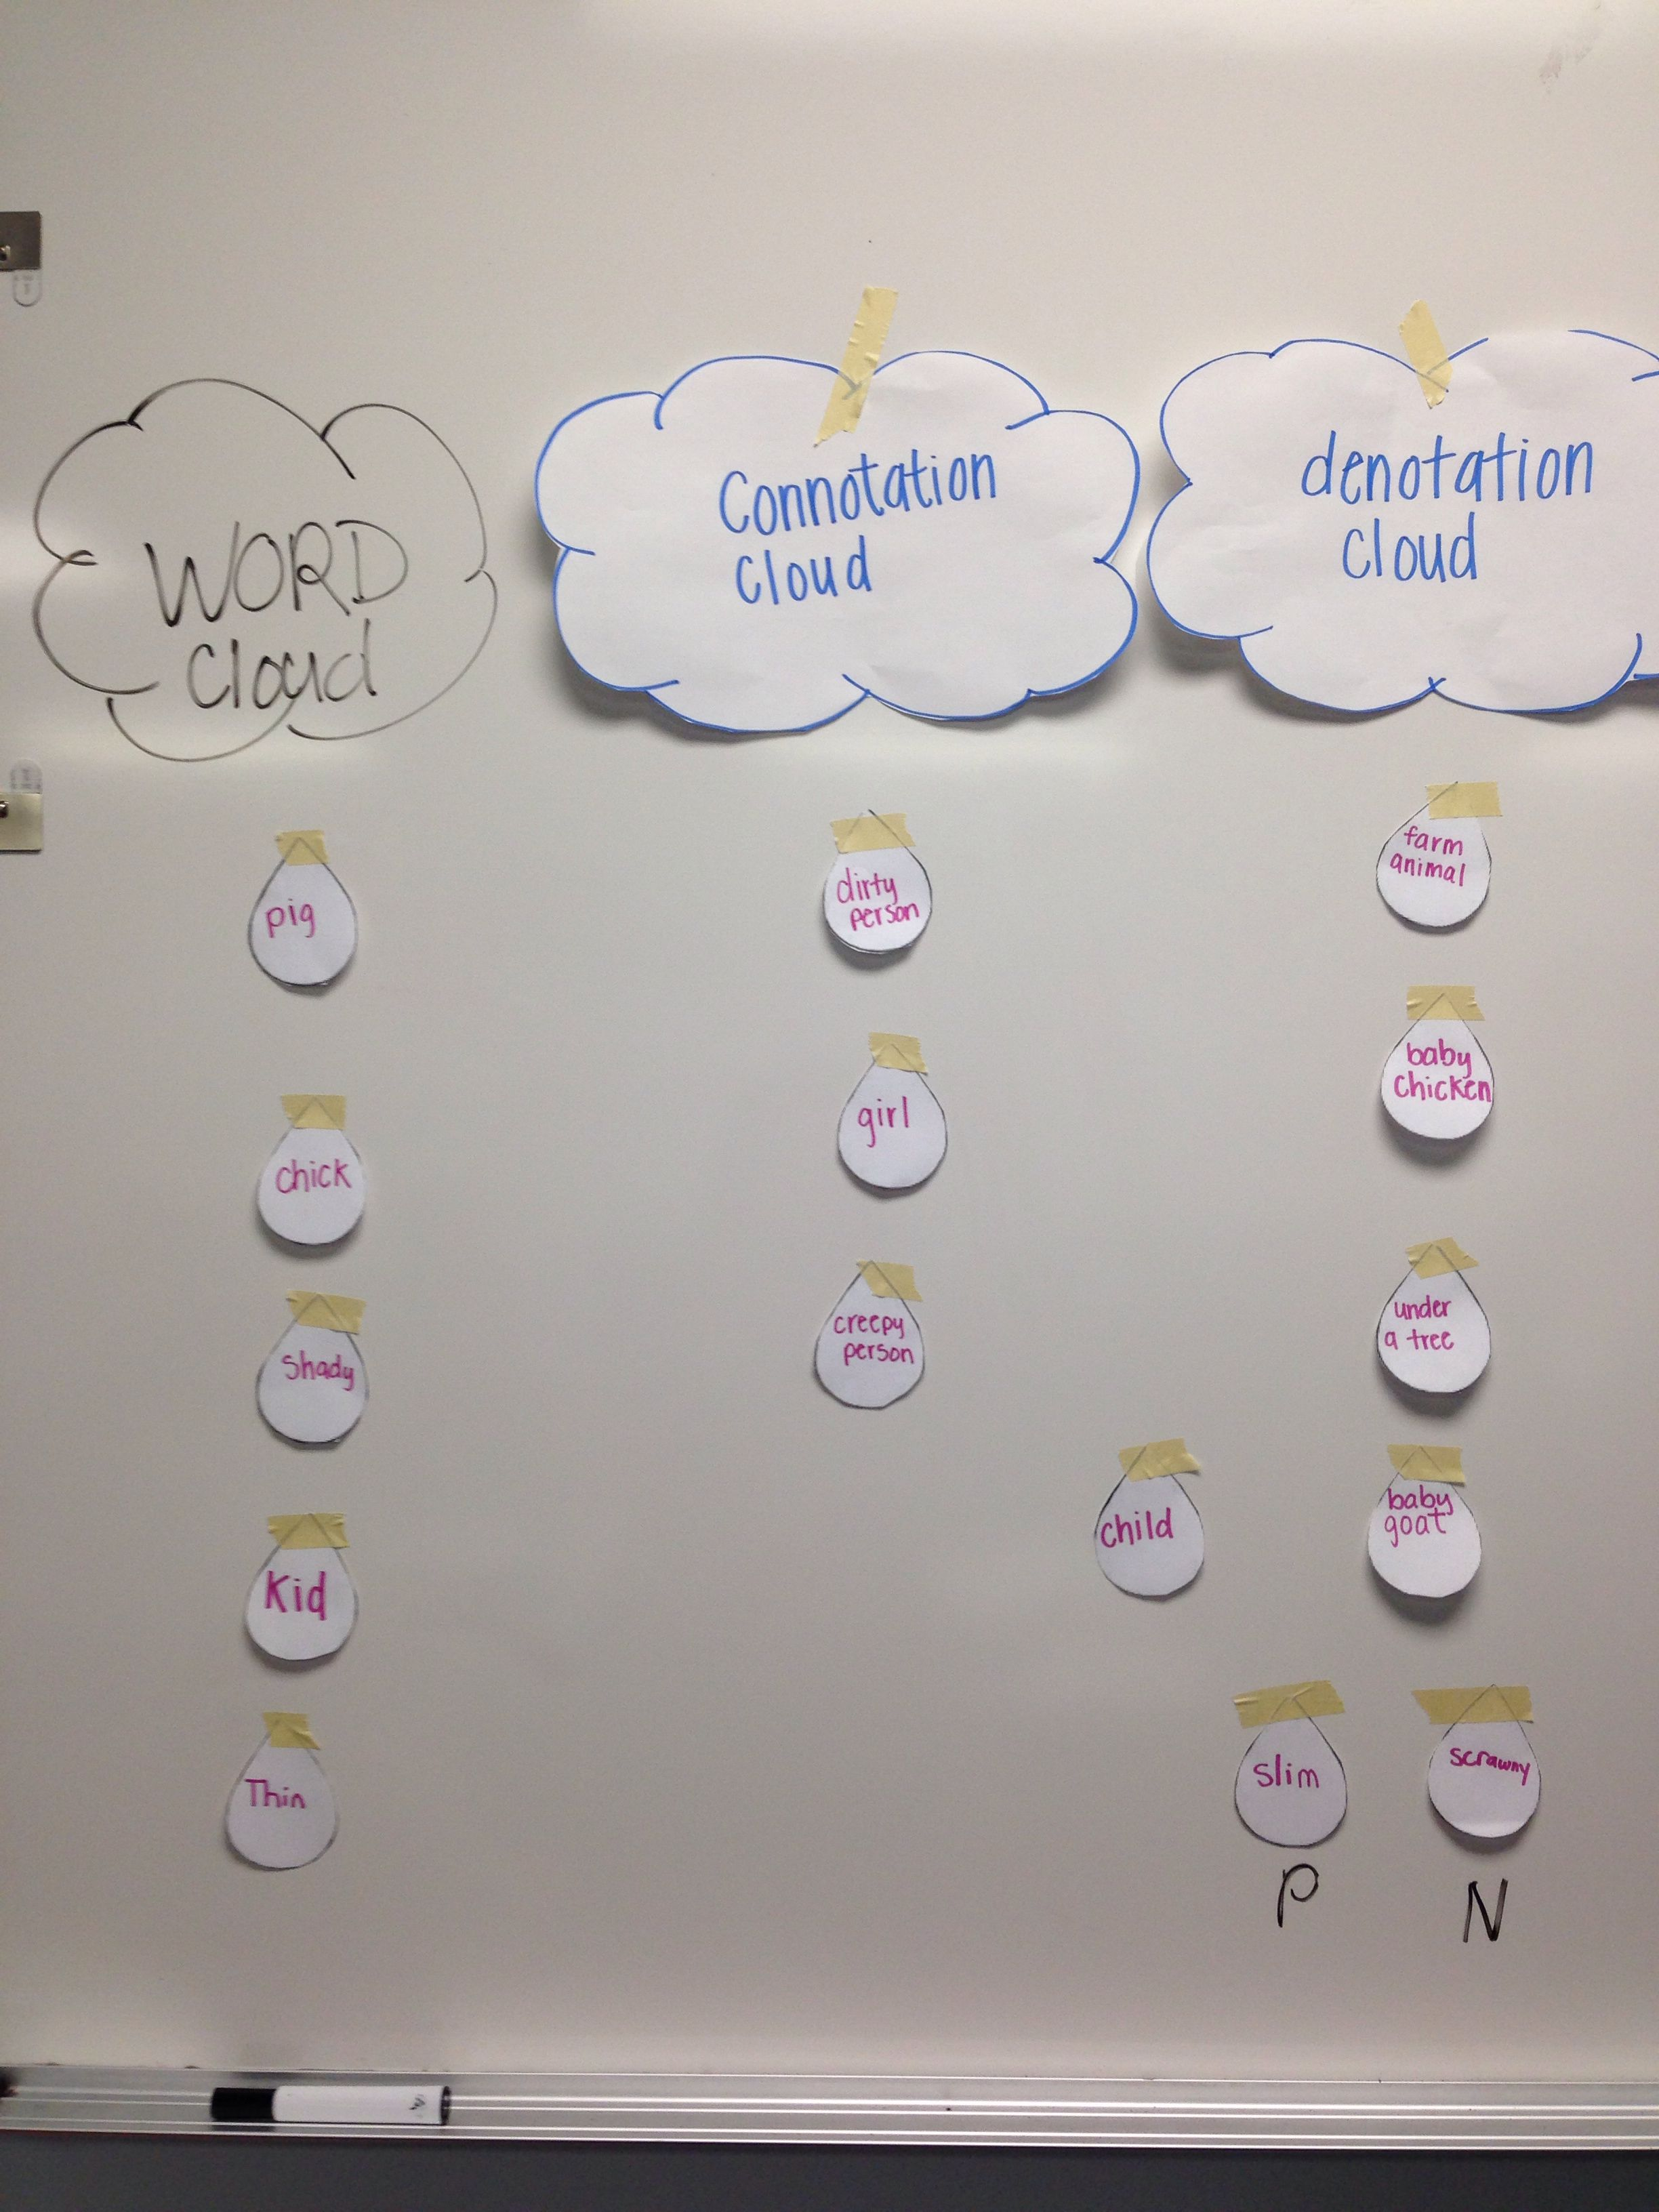 hight resolution of Connotation and Denotation clouds! Great activity for ELL's to practi…    Middle school language arts classroom